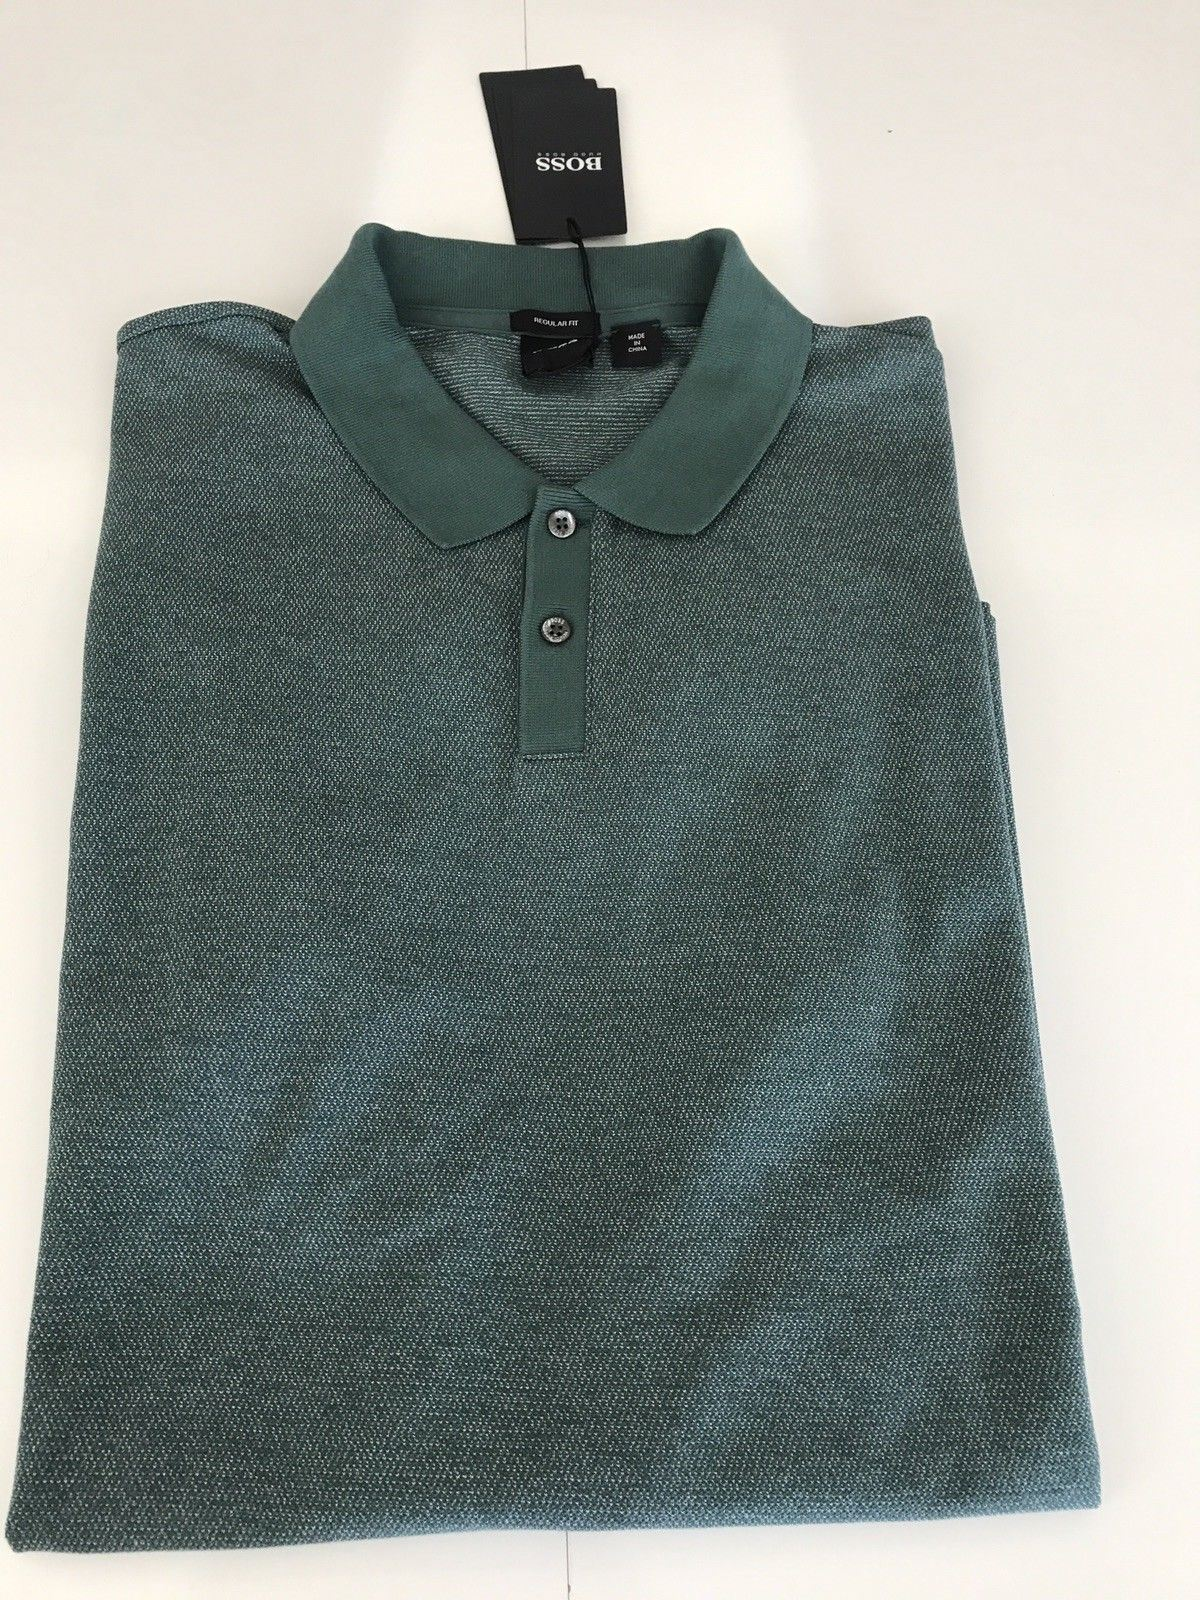 NWT $118 BOSS Hugo Boss Regular Fit Polo Shirt 2XL Green